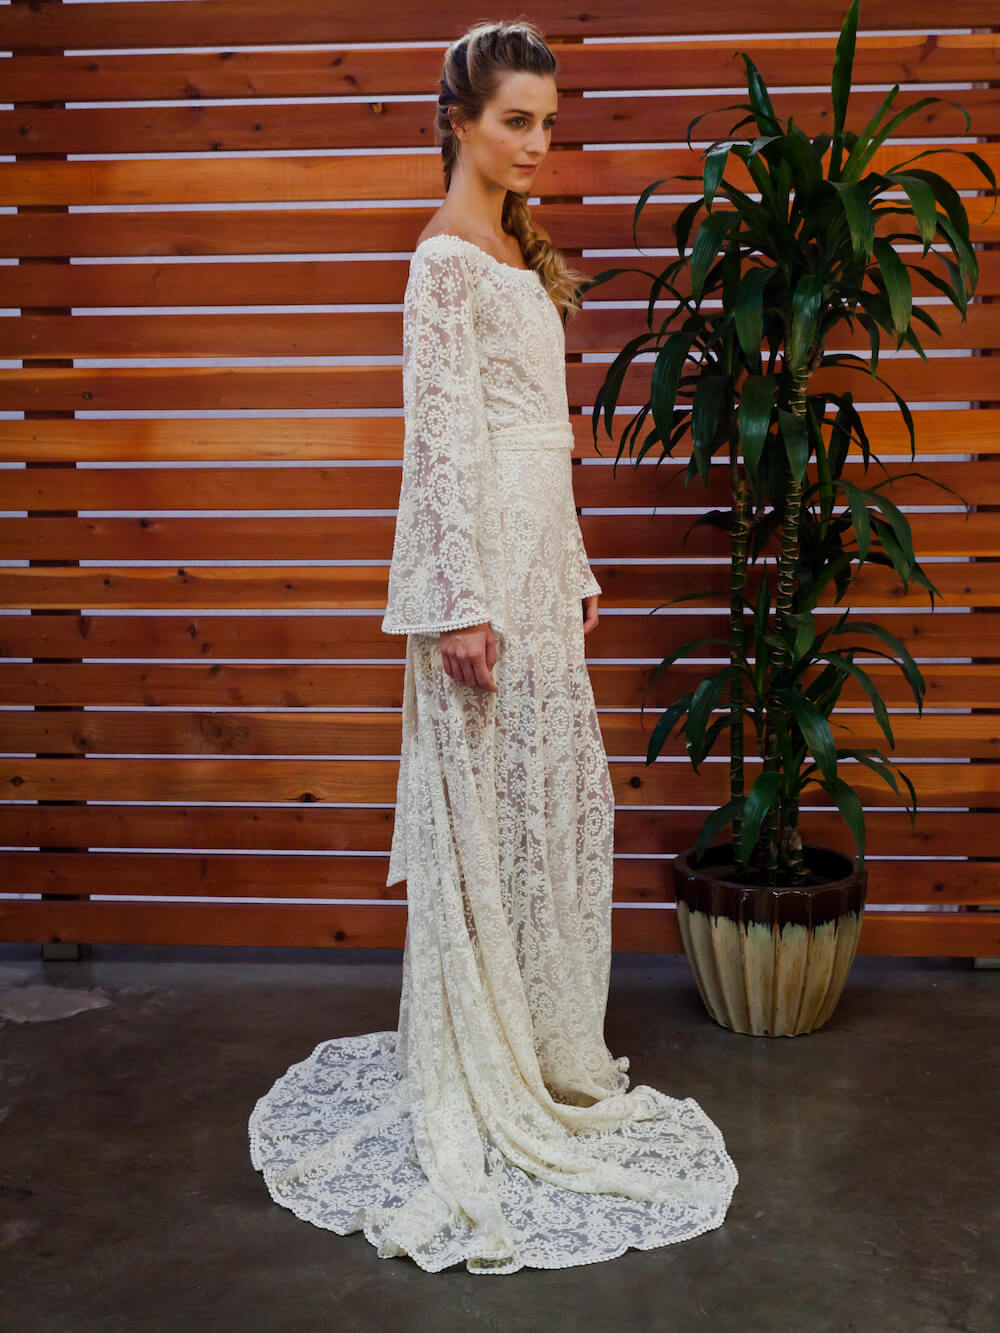 sydnie-bell-sleeve-hippie-wedding-dress